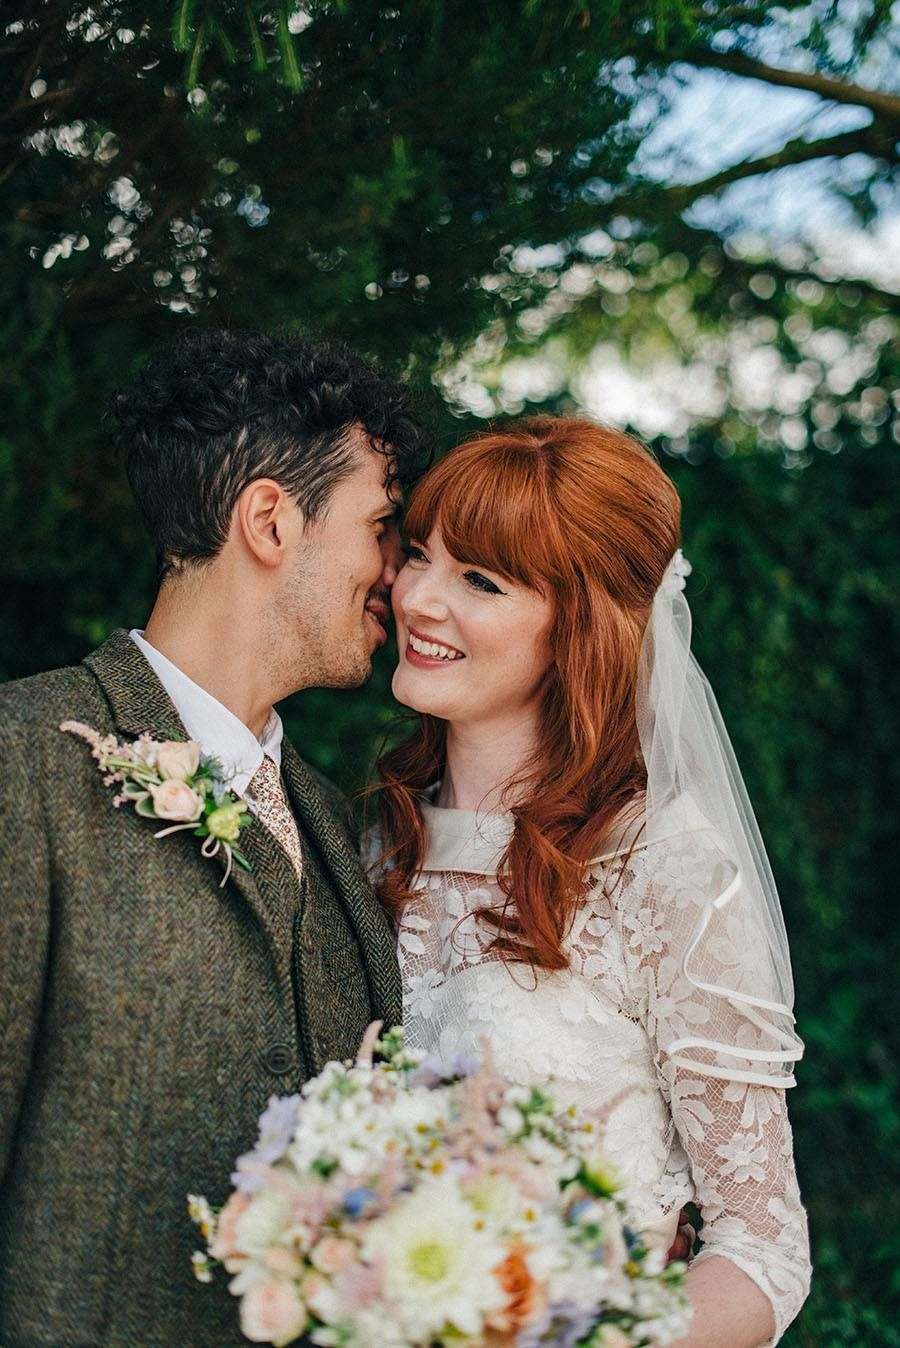 60s Style Bride & Real Wedding with Kitsch